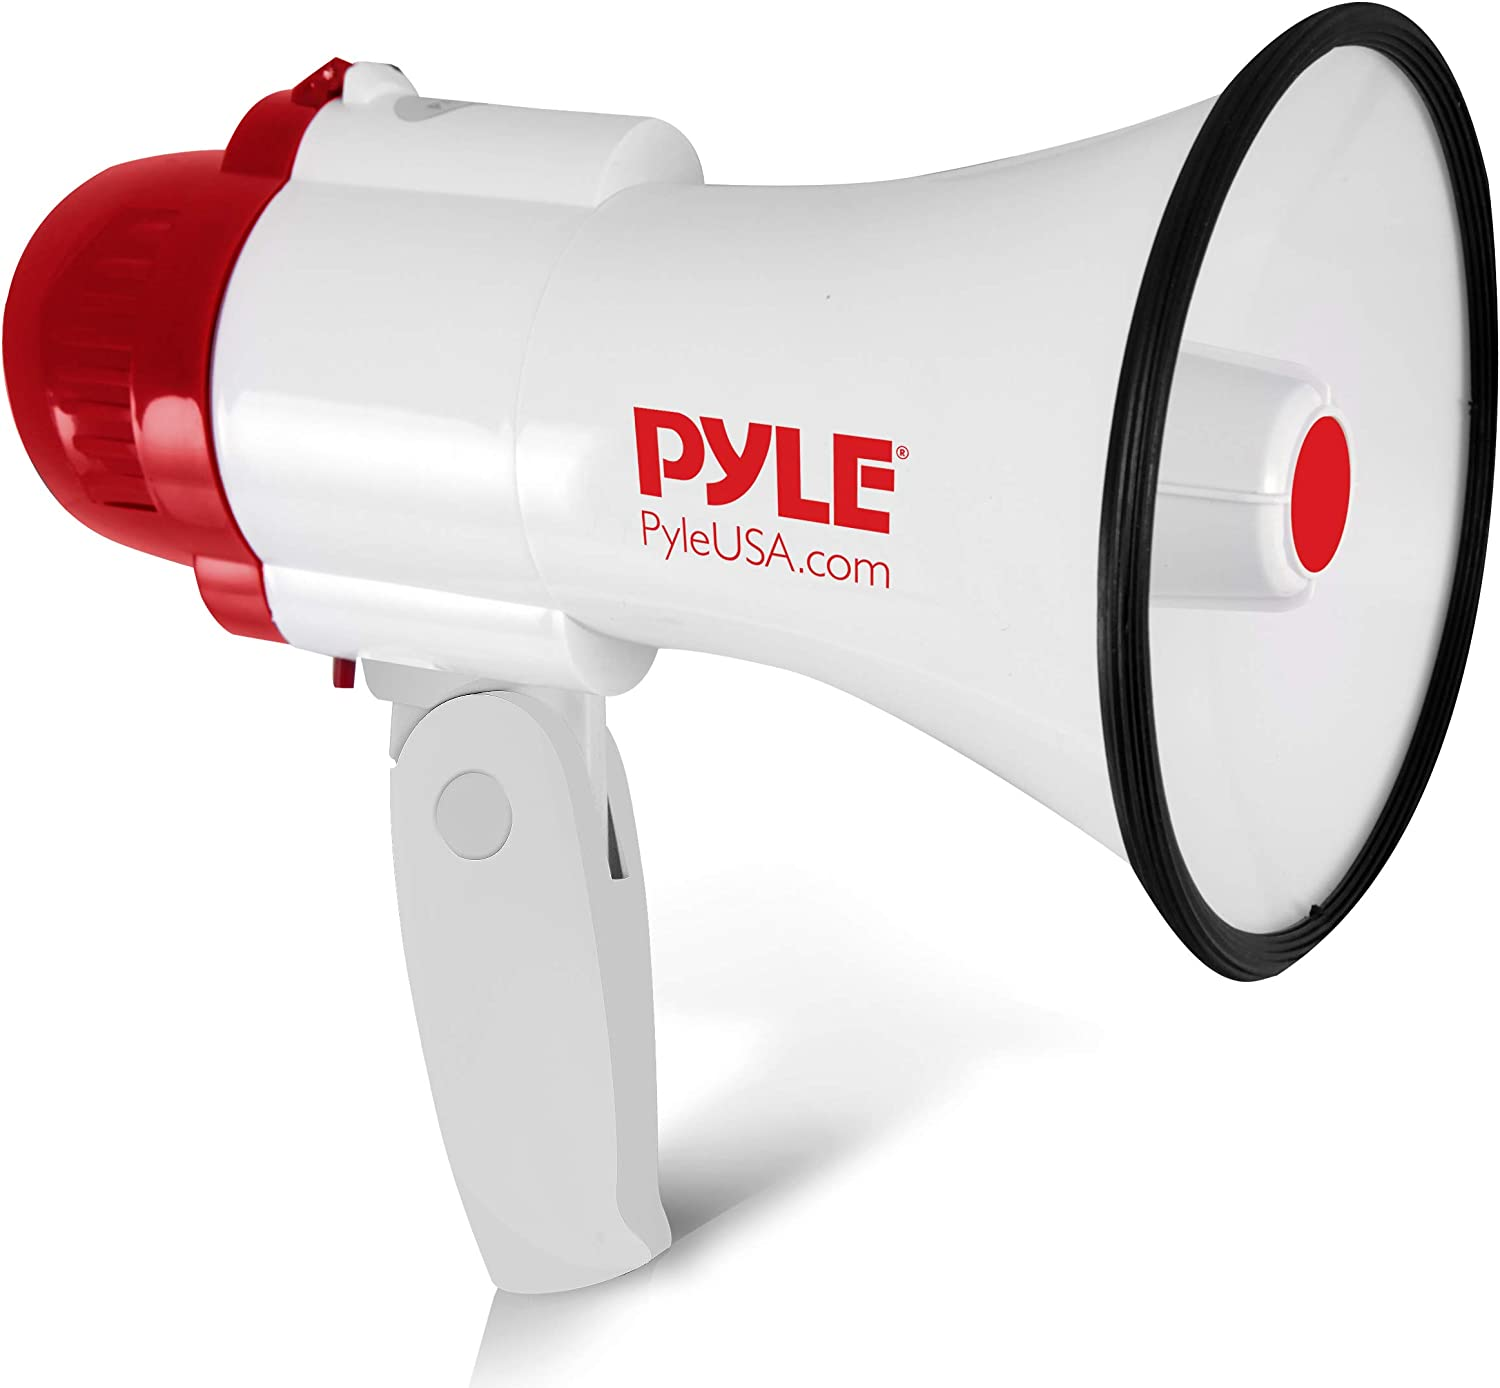 Pyle Megaphone Speaker Lightweight Bullhorn - Built-in Siren, Adjustable Volume Control and 800 Yard Range - PMP30